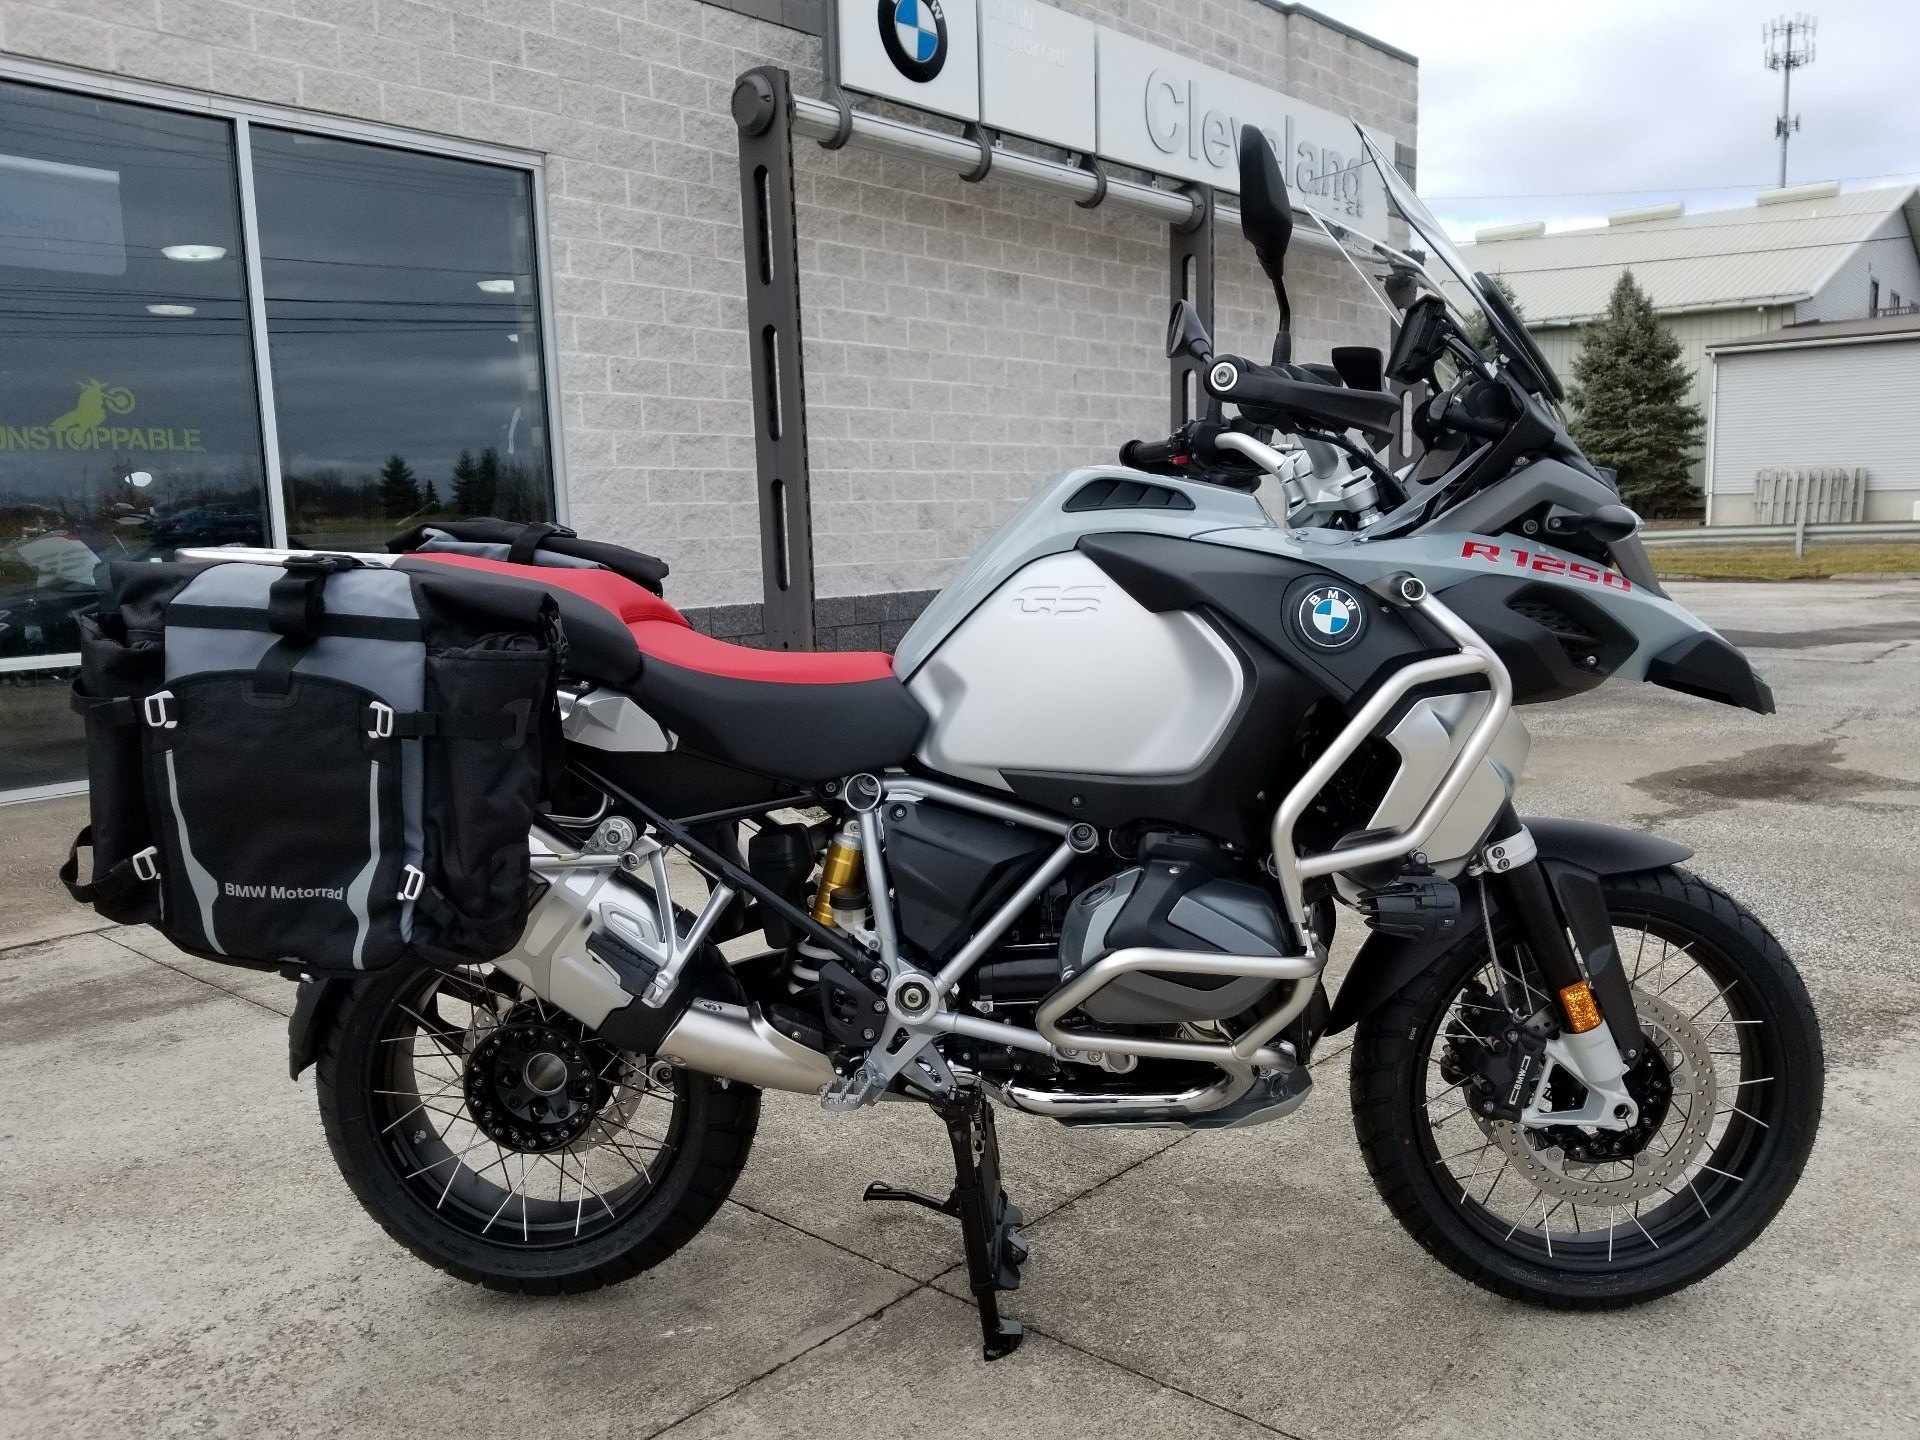 new 2019 bmw r1250gs adv motorcycles in aurora oh stock. Black Bedroom Furniture Sets. Home Design Ideas